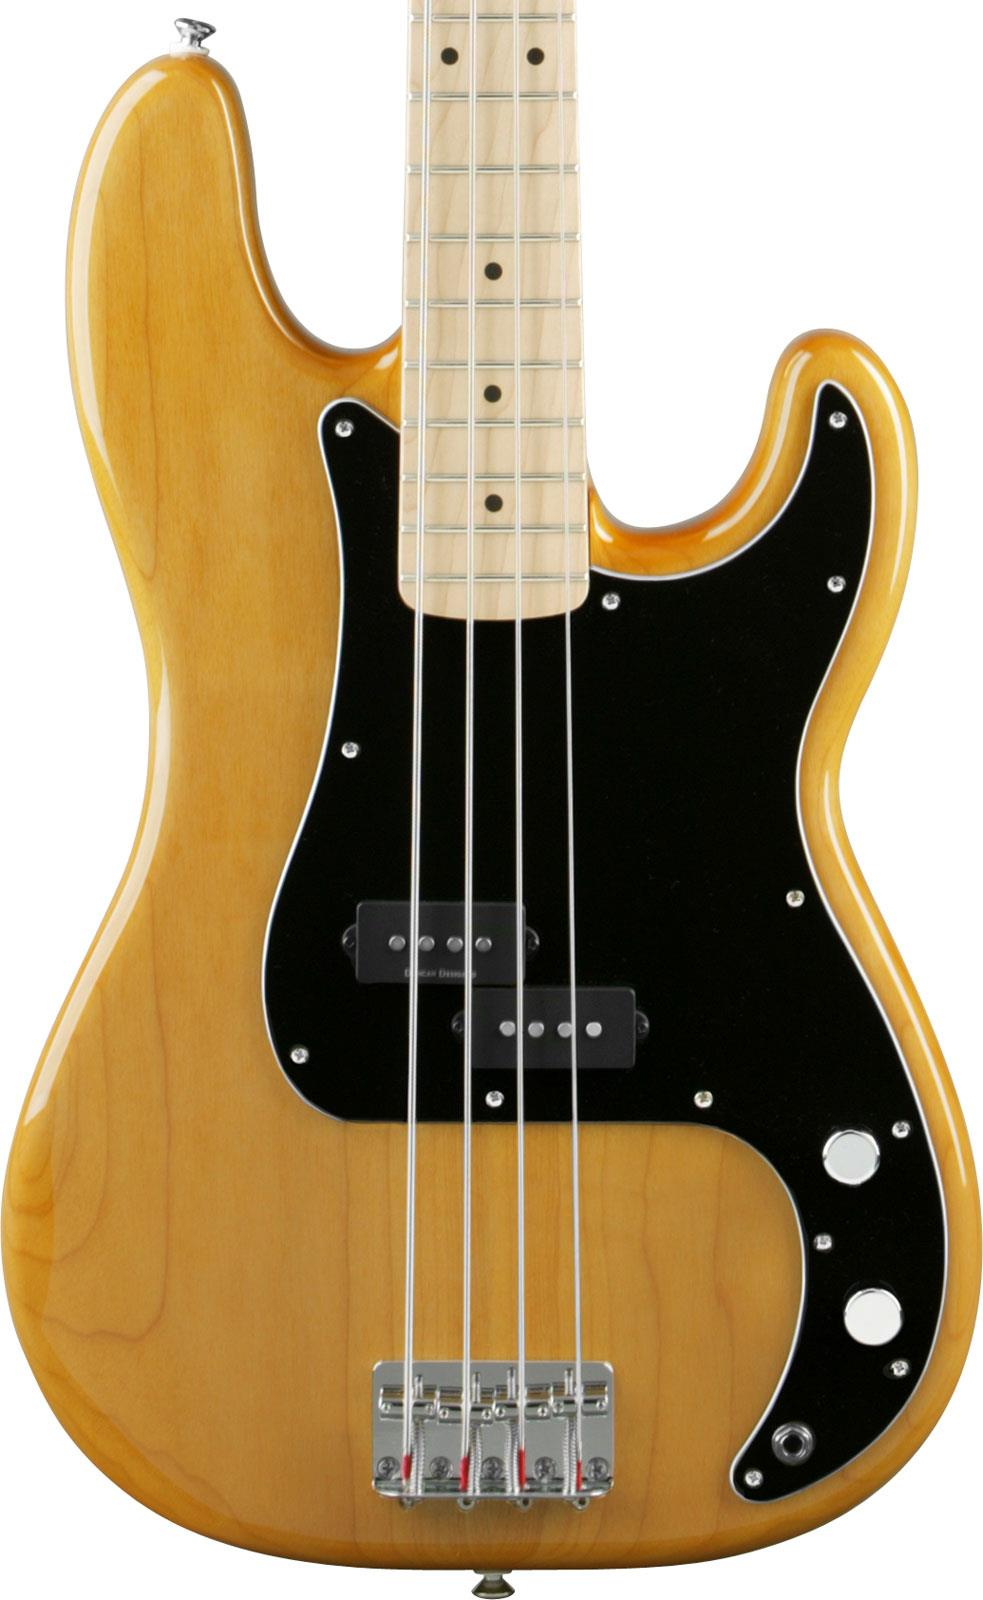 Groningen Vintage Squier Vintage Modified Precision Bass Amber | Keymusic